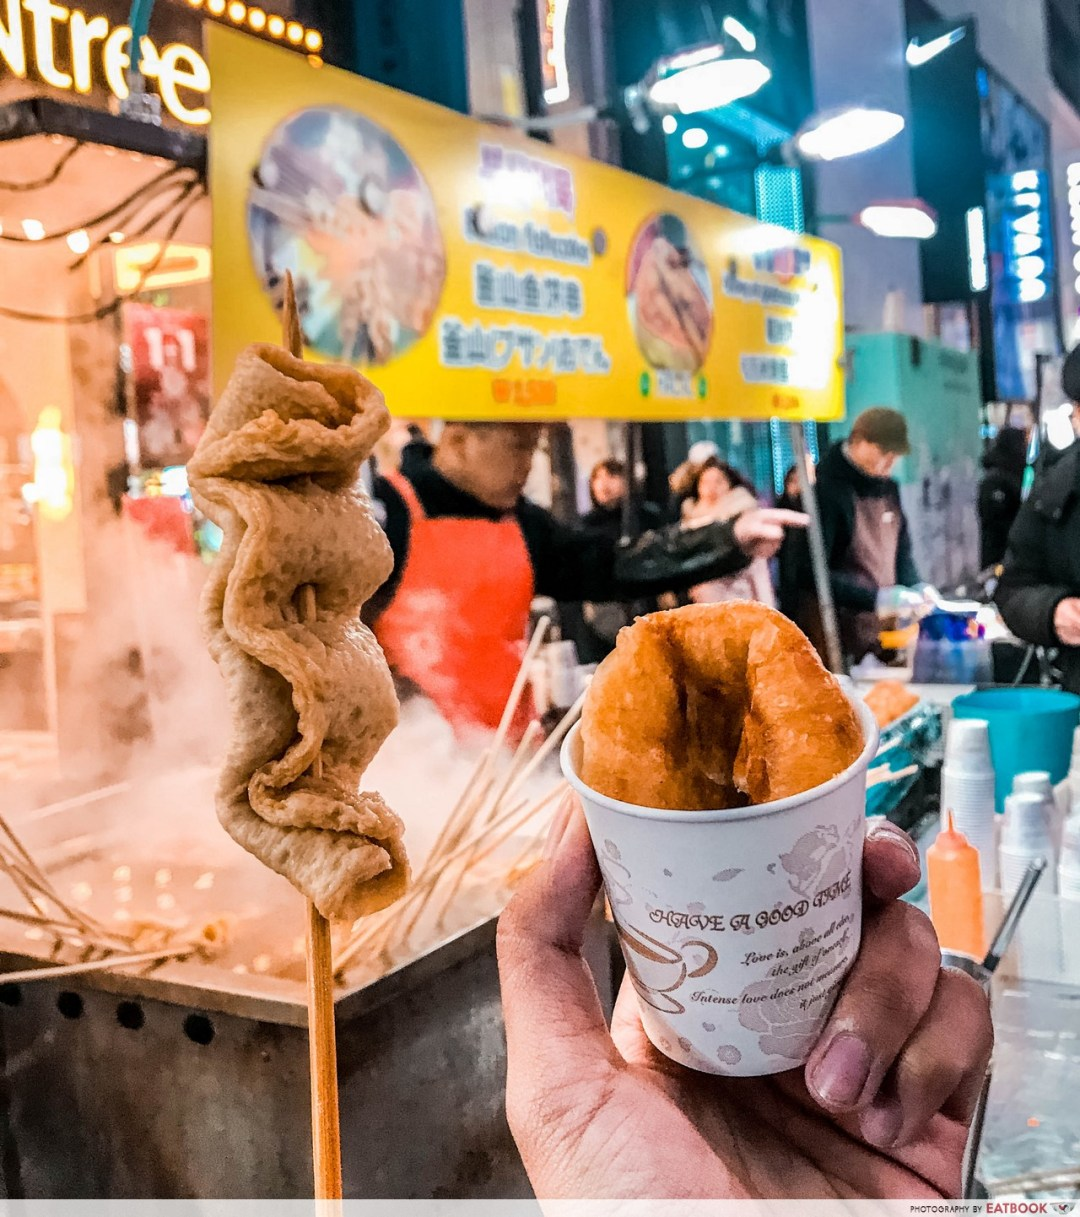 Halal Food places In Seoul - Fishcake and Sweet pancake stall